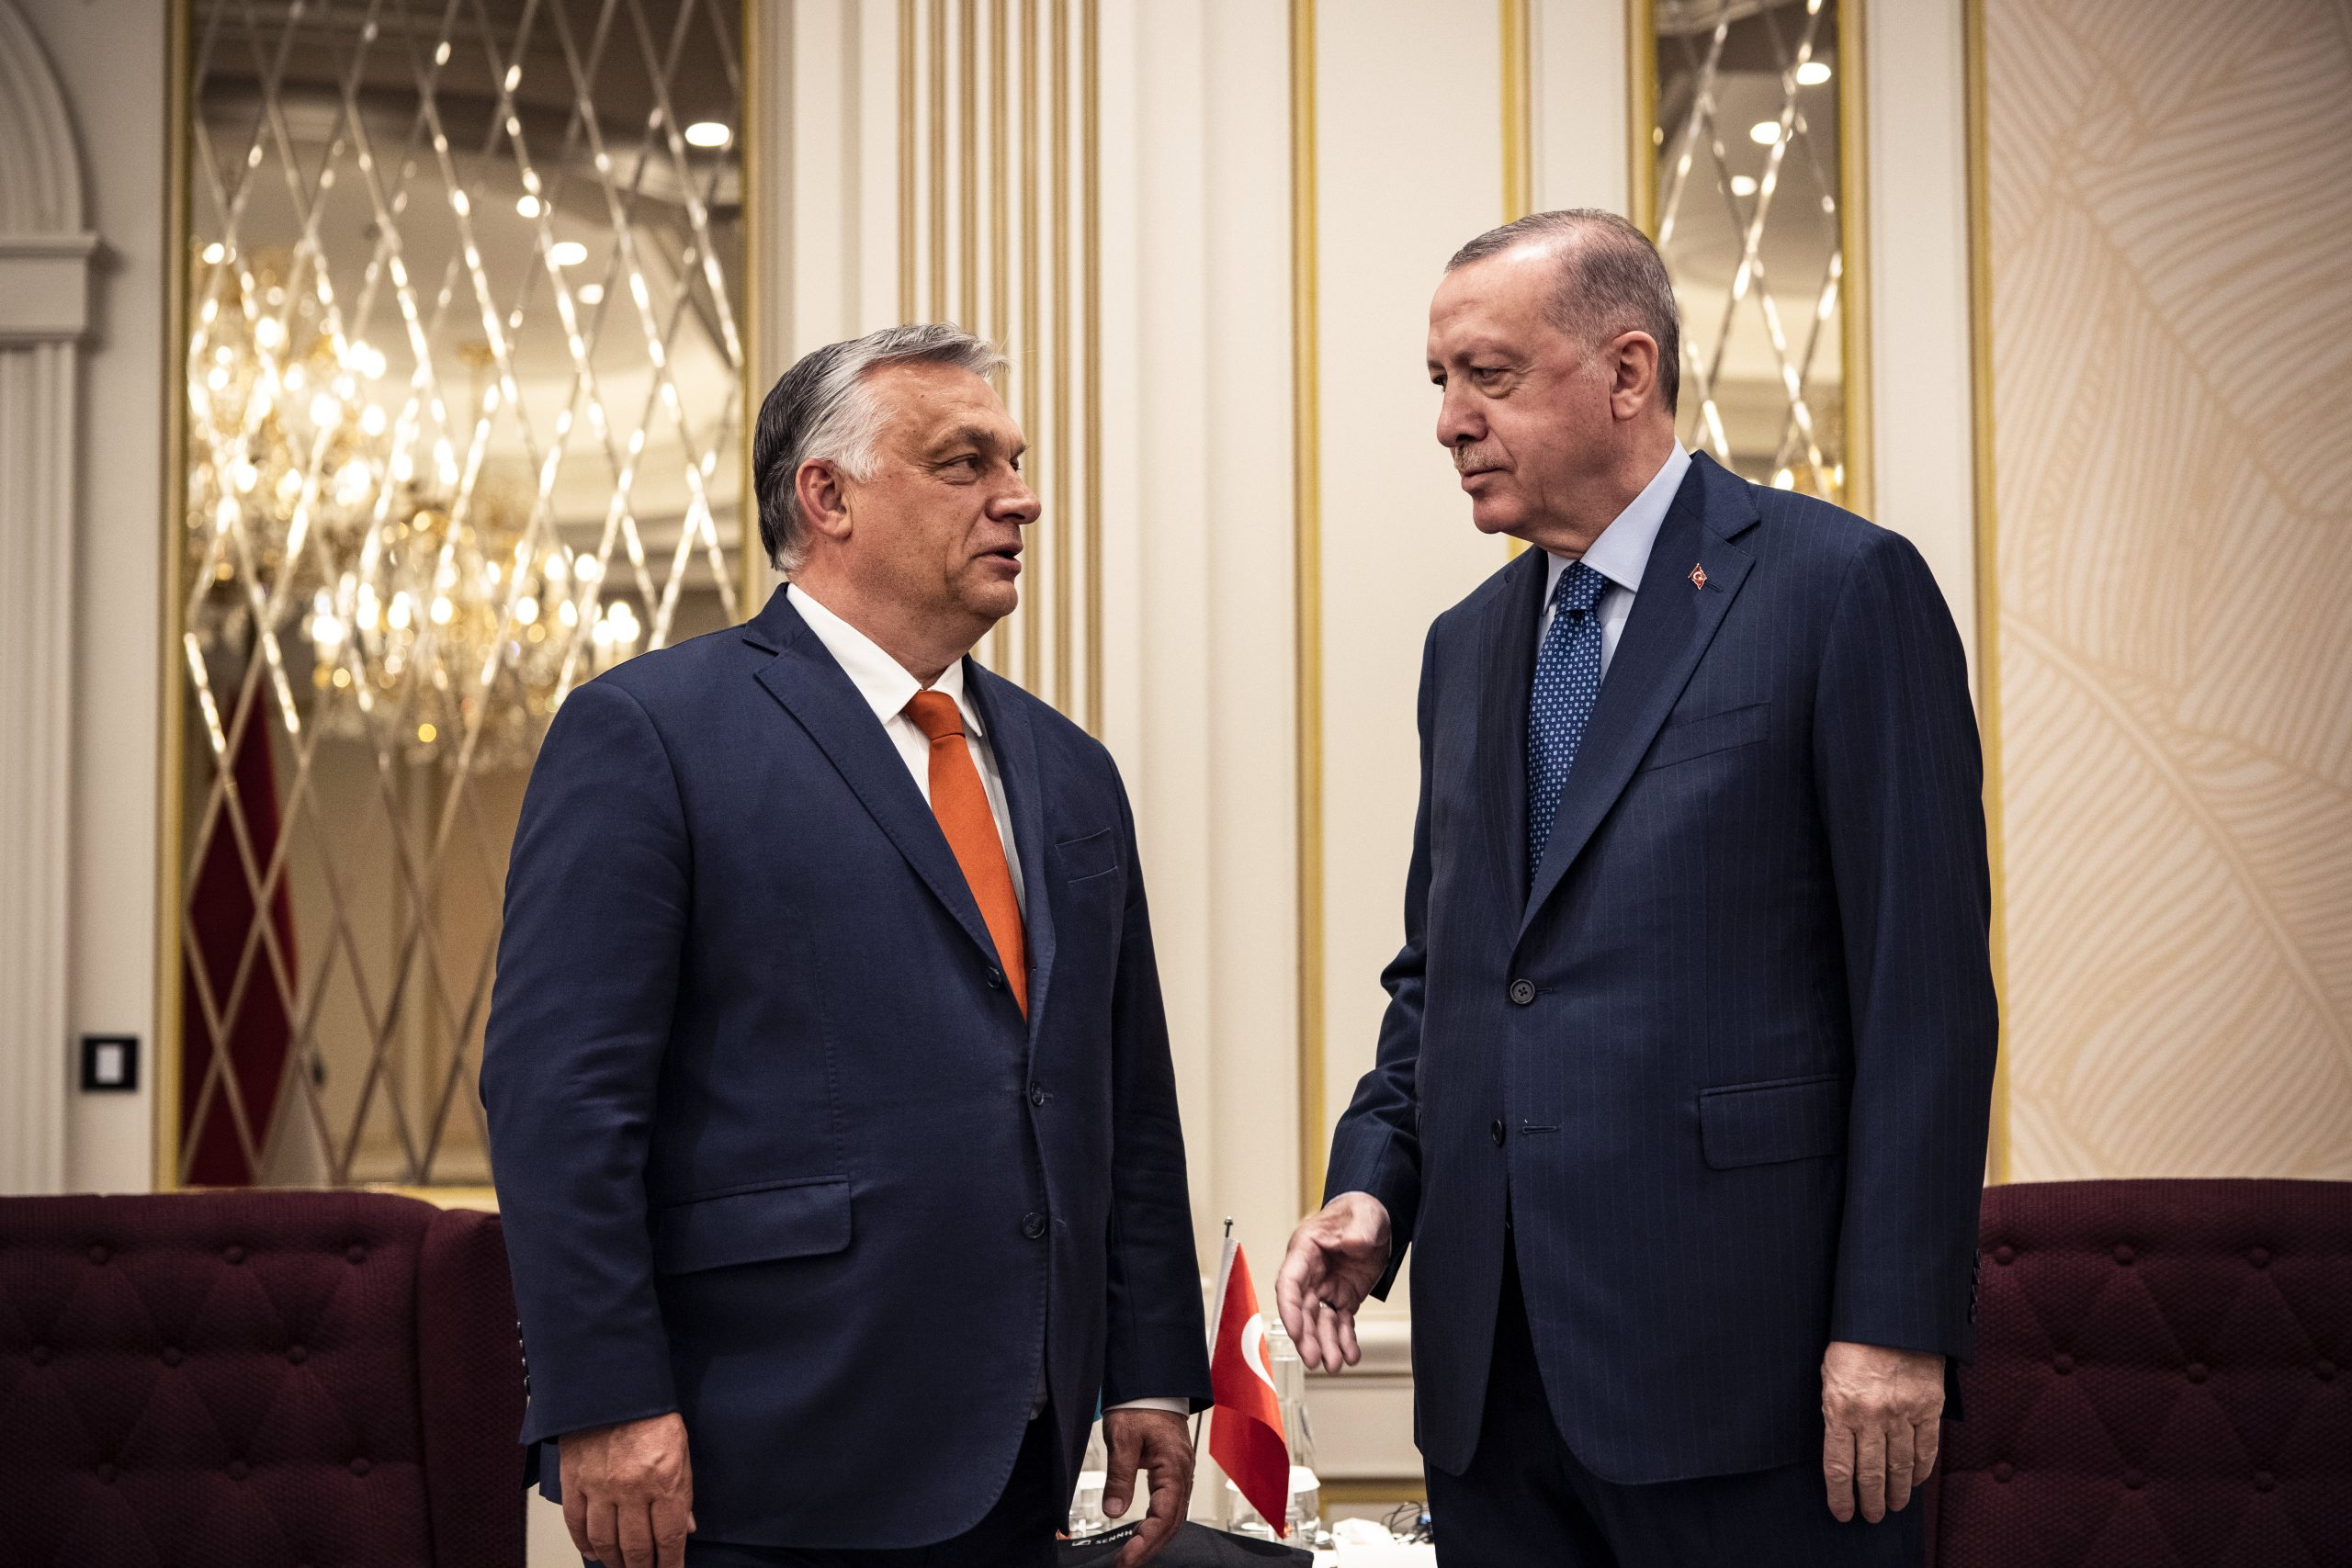 PM Orbán Discusses Defence Cooperation with Erdogan